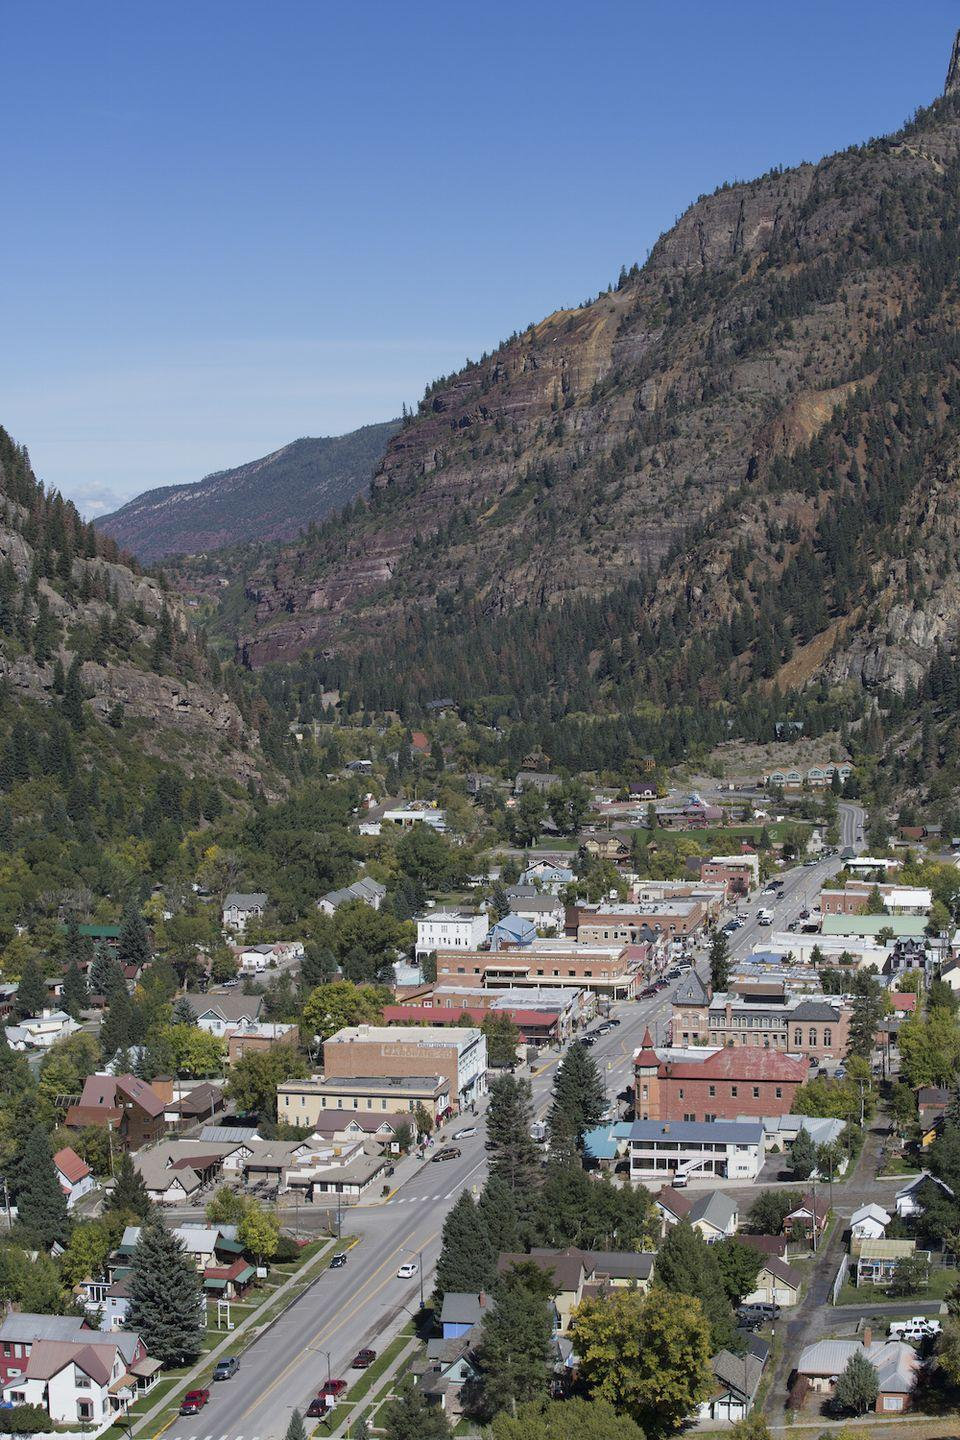 """<p>Life's a little more relaxed in Ouray, which is perhaps due to the <a href=""""http://www.ouraycolorado.com/"""" rel=""""nofollow noopener"""" target=""""_blank"""" data-ylk=""""slk:non-sulphur hot springs"""" class=""""link rapid-noclick-resp"""">non-sulphur hot springs</a> that are popular with locals and visitors alike. The beauty of the surrounding mountains might also inspire a new perspective on life, especially when viewed on a drive on the <a href=""""http://www.ouraycolorado.com/"""" rel=""""nofollow noopener"""" target=""""_blank"""" data-ylk=""""slk:San Juan Skyway"""" class=""""link rapid-noclick-resp"""">San Juan Skyway</a>, one of the most scenic in the country.</p><p><a href=""""https://www.housebeautiful.com/lifestyle/g3600/best-scenic-byways/"""" rel=""""nofollow noopener"""" target=""""_blank"""" data-ylk=""""slk:See America's most scenic drives »"""" class=""""link rapid-noclick-resp""""><em>See America's most scenic drives »</em></a></p>"""